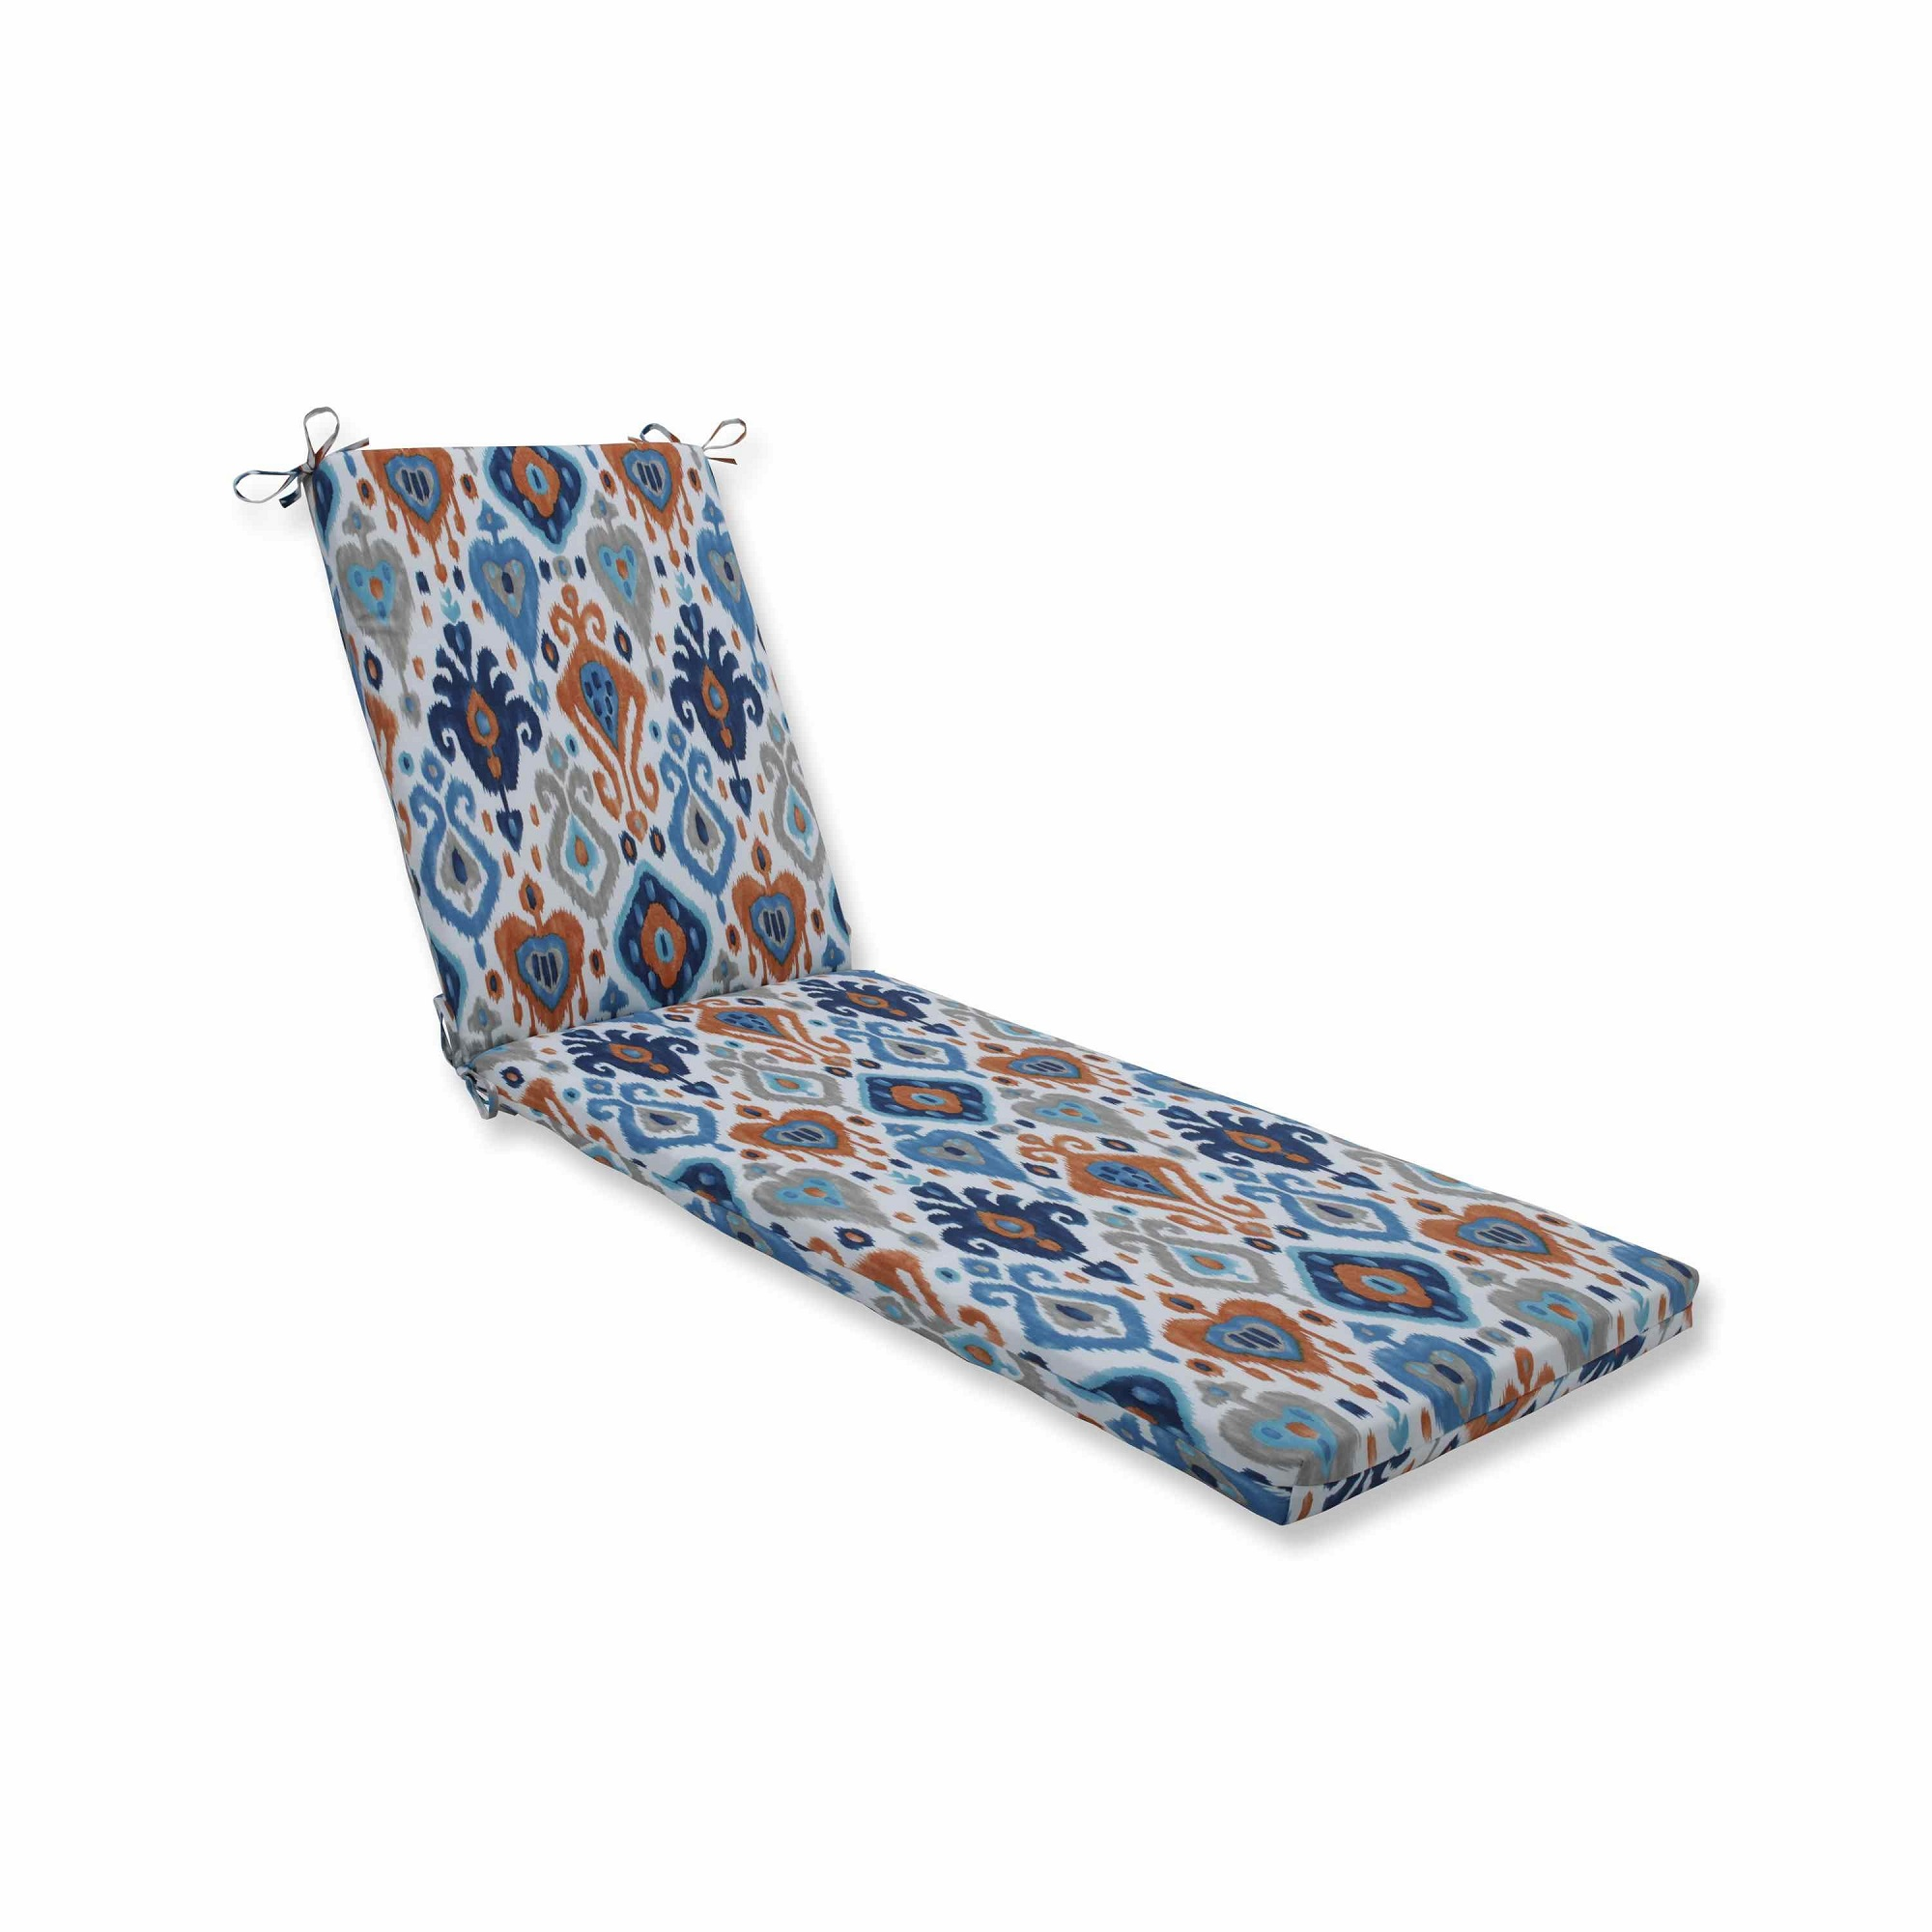 Vibrantly Colored Ikat Pattern Outdoor Patio Chaise Lounge Cushion 80""